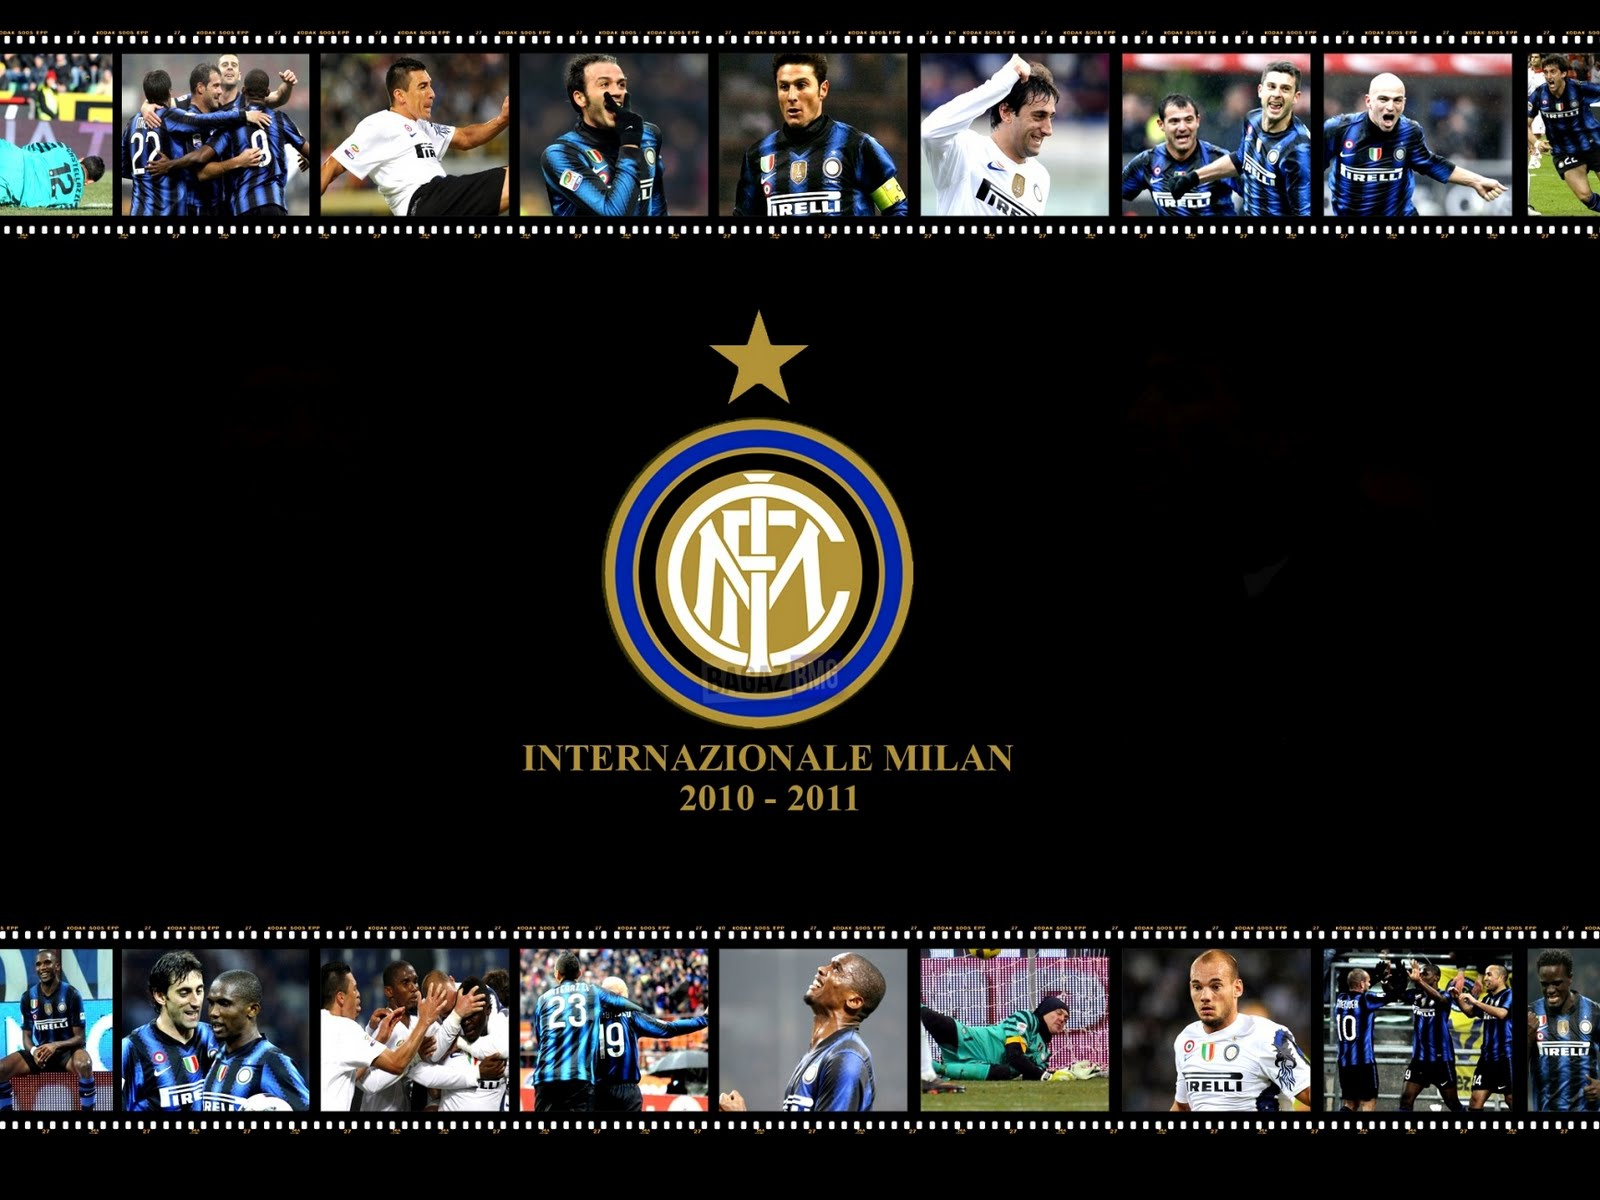 inter milan wallpaper 2012 - photo #15